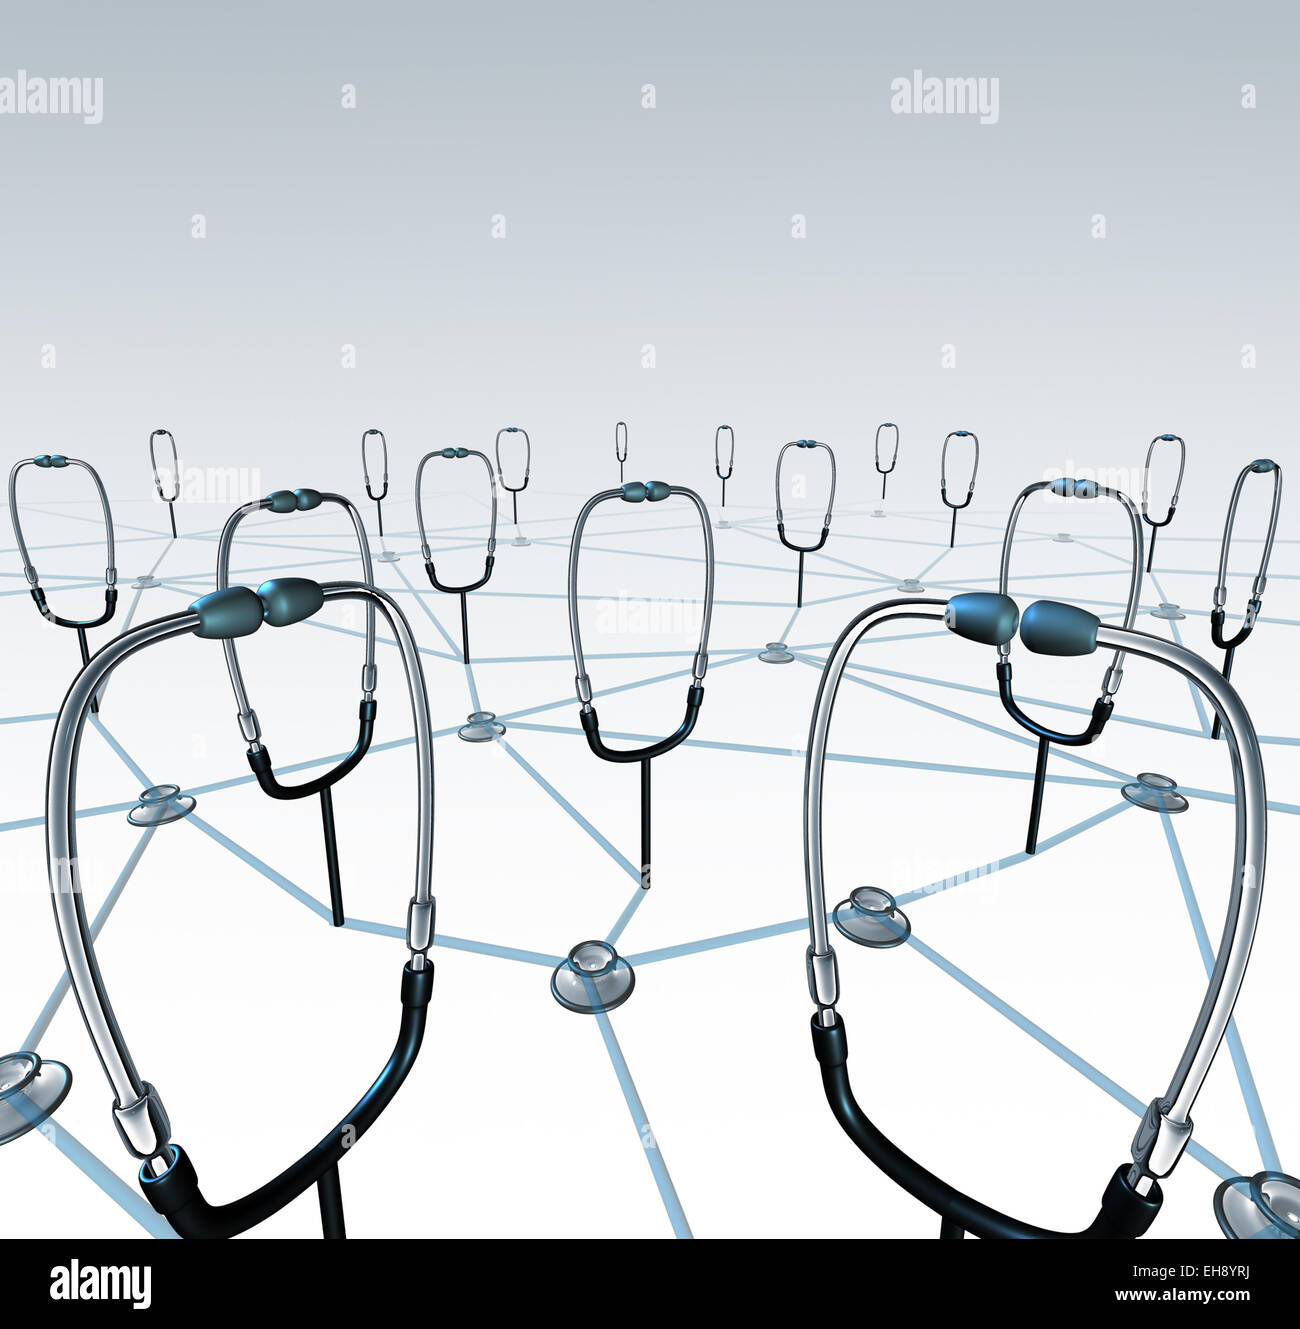 Doctor network and medical records exchange concept as a group of connected physician stethoscopes sharing data - Stock Image